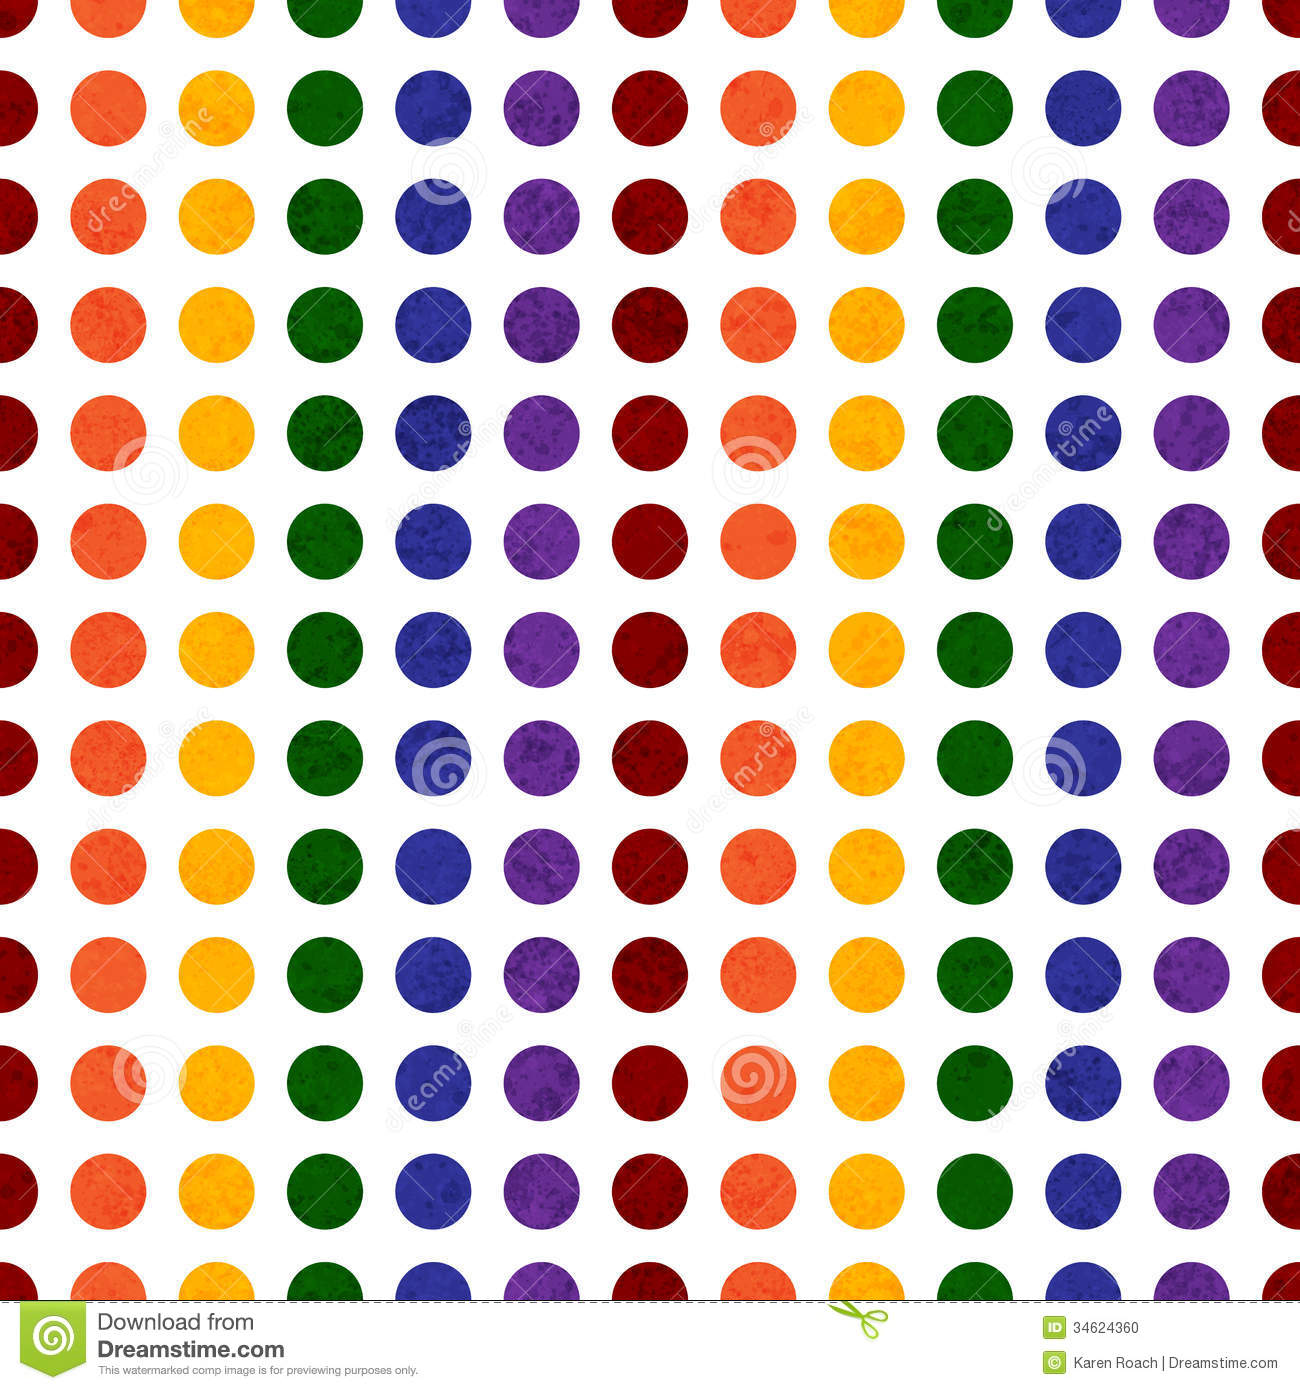 Colored Dot Clipart.